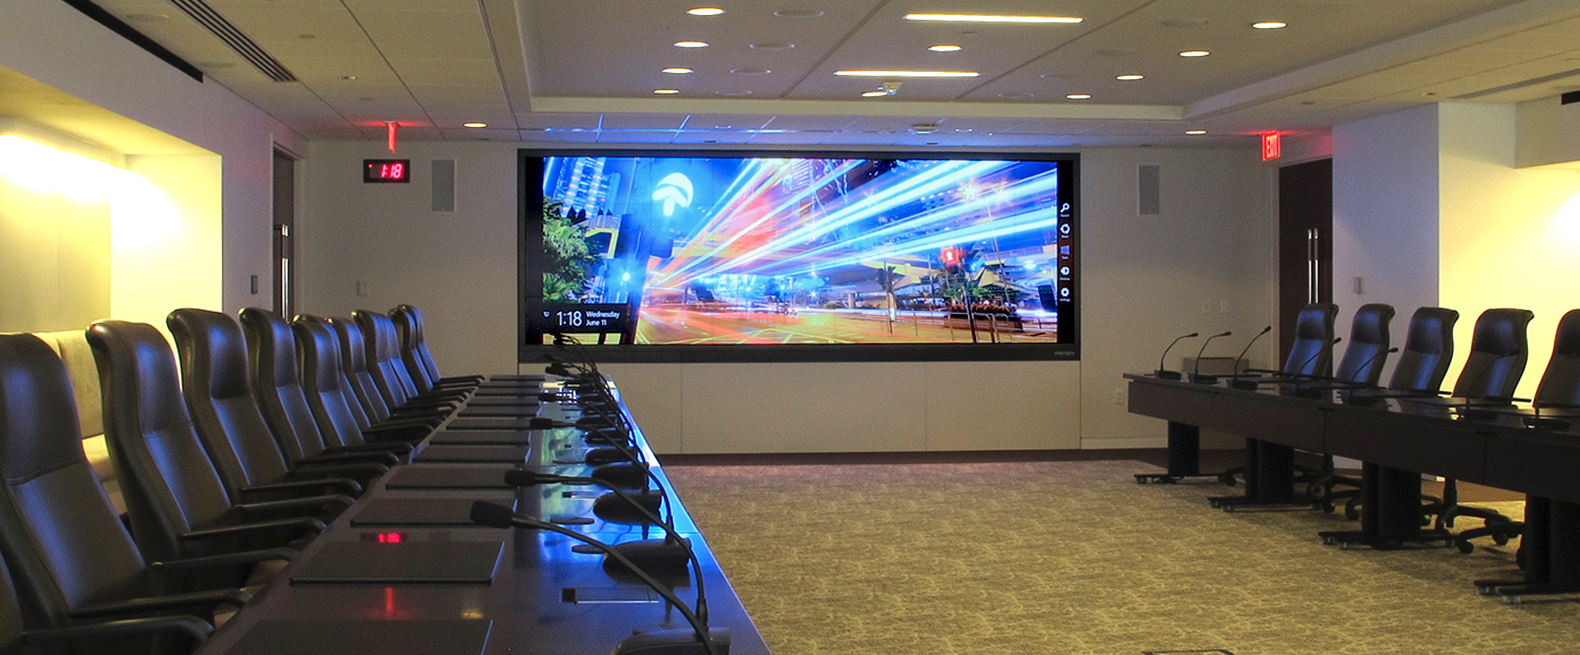 Prysm Video Wall at Phrma